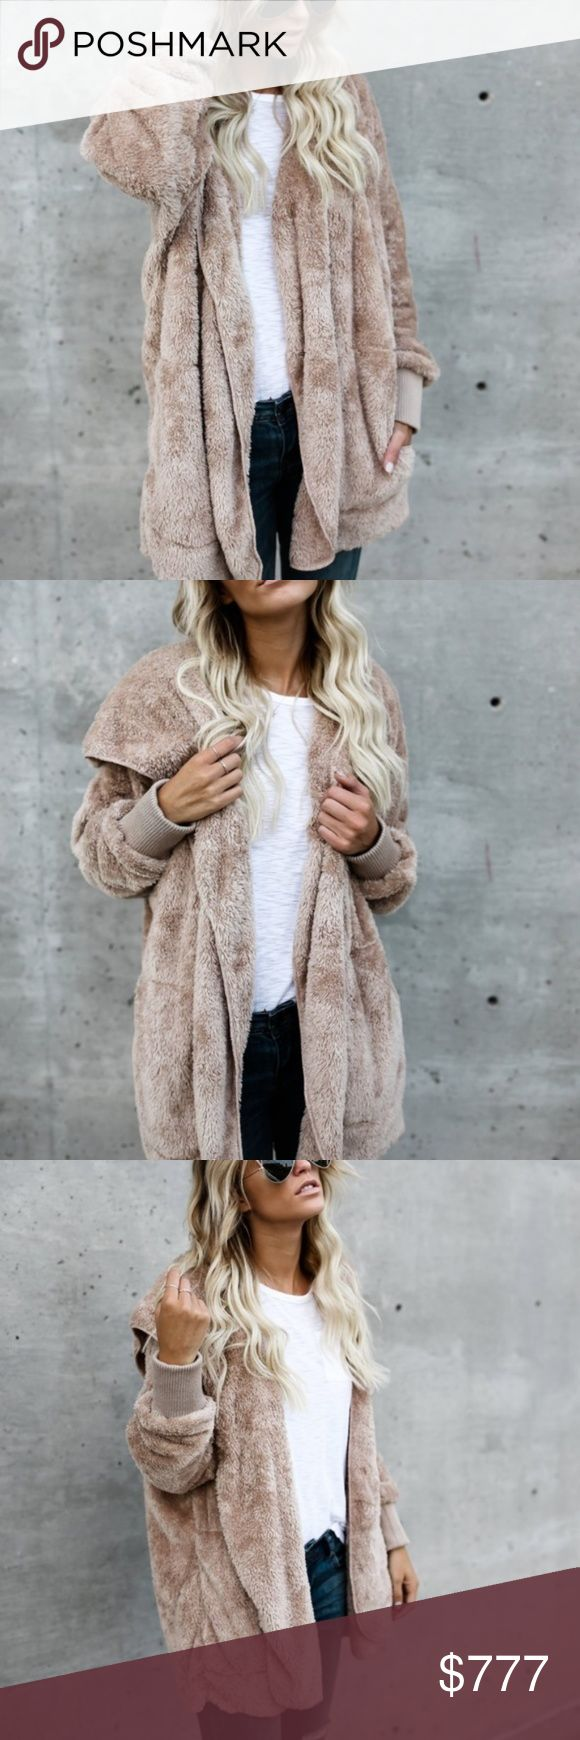 33 Ultra Cozy Bedroom Decorating Ideas For Winter Warmth: ULTRA SOFT HOODIE The Softest Teddy Bear Hoodie Ever